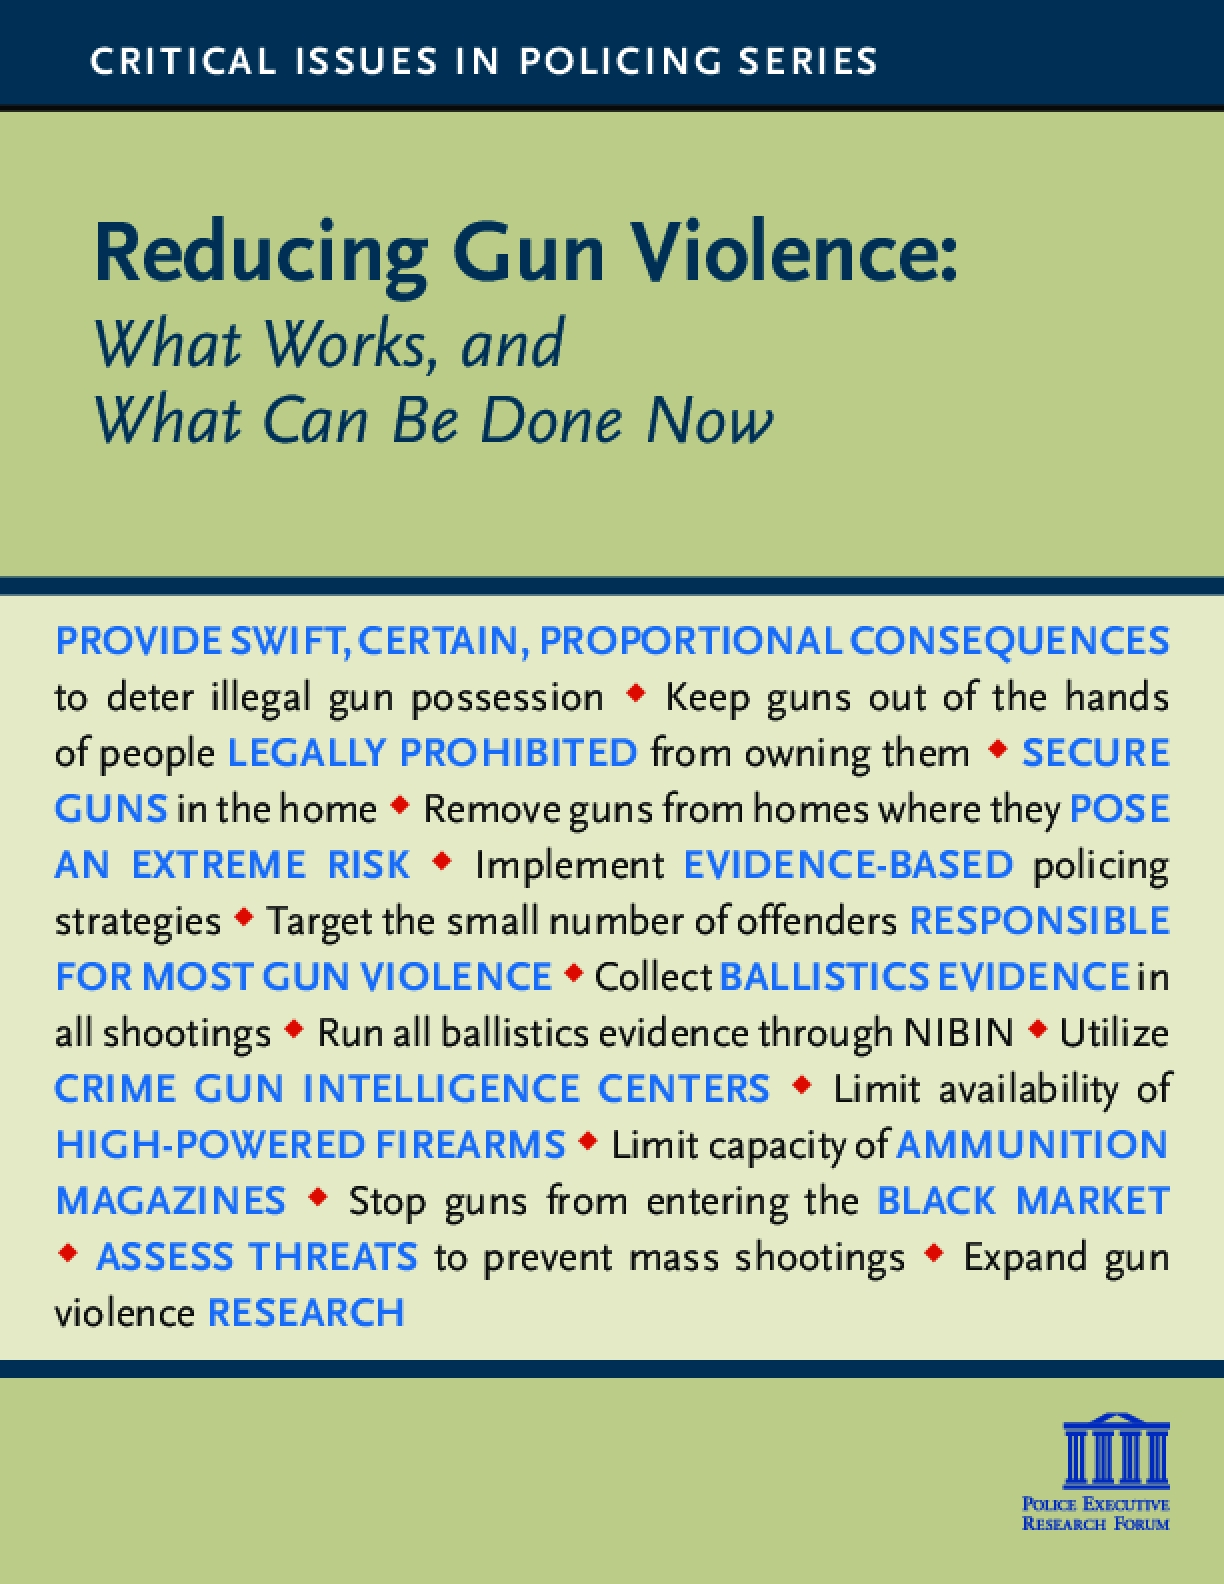 Reducing Gun Violence: What Works, and What Can Be Done Now